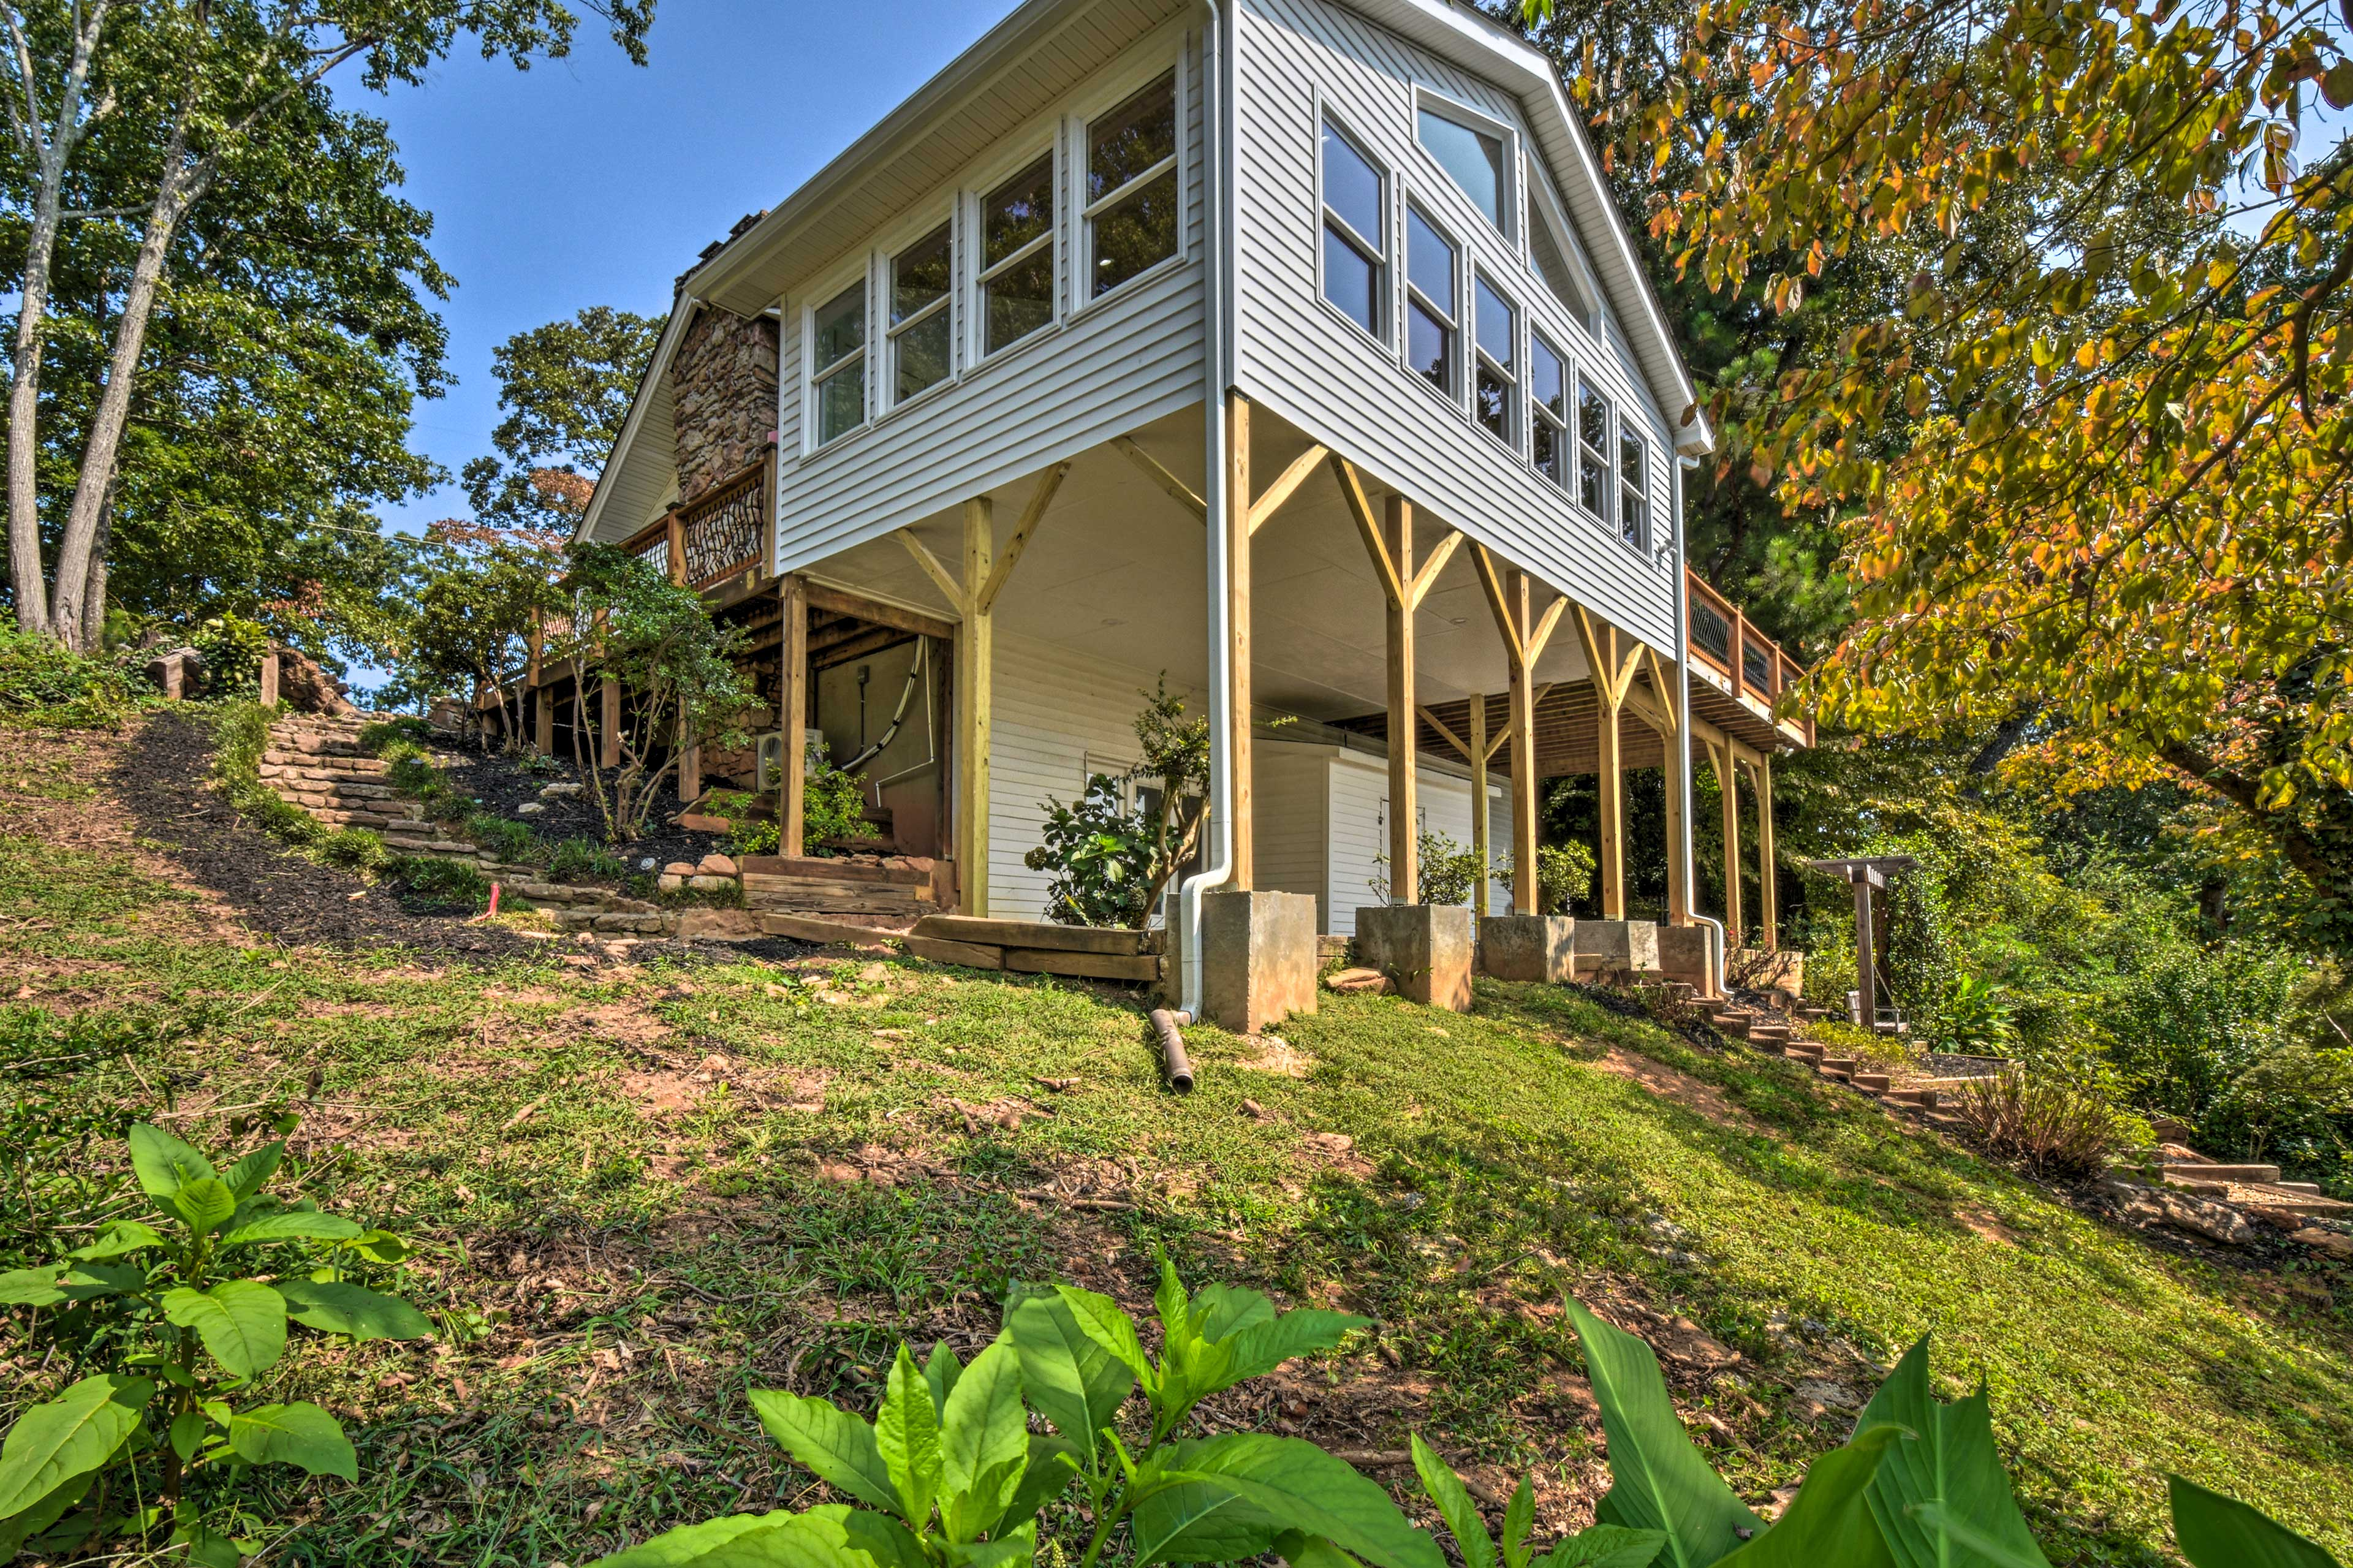 Property Exterior | 2-Story Home | Private Boardwalk to Lake | Shared Dock